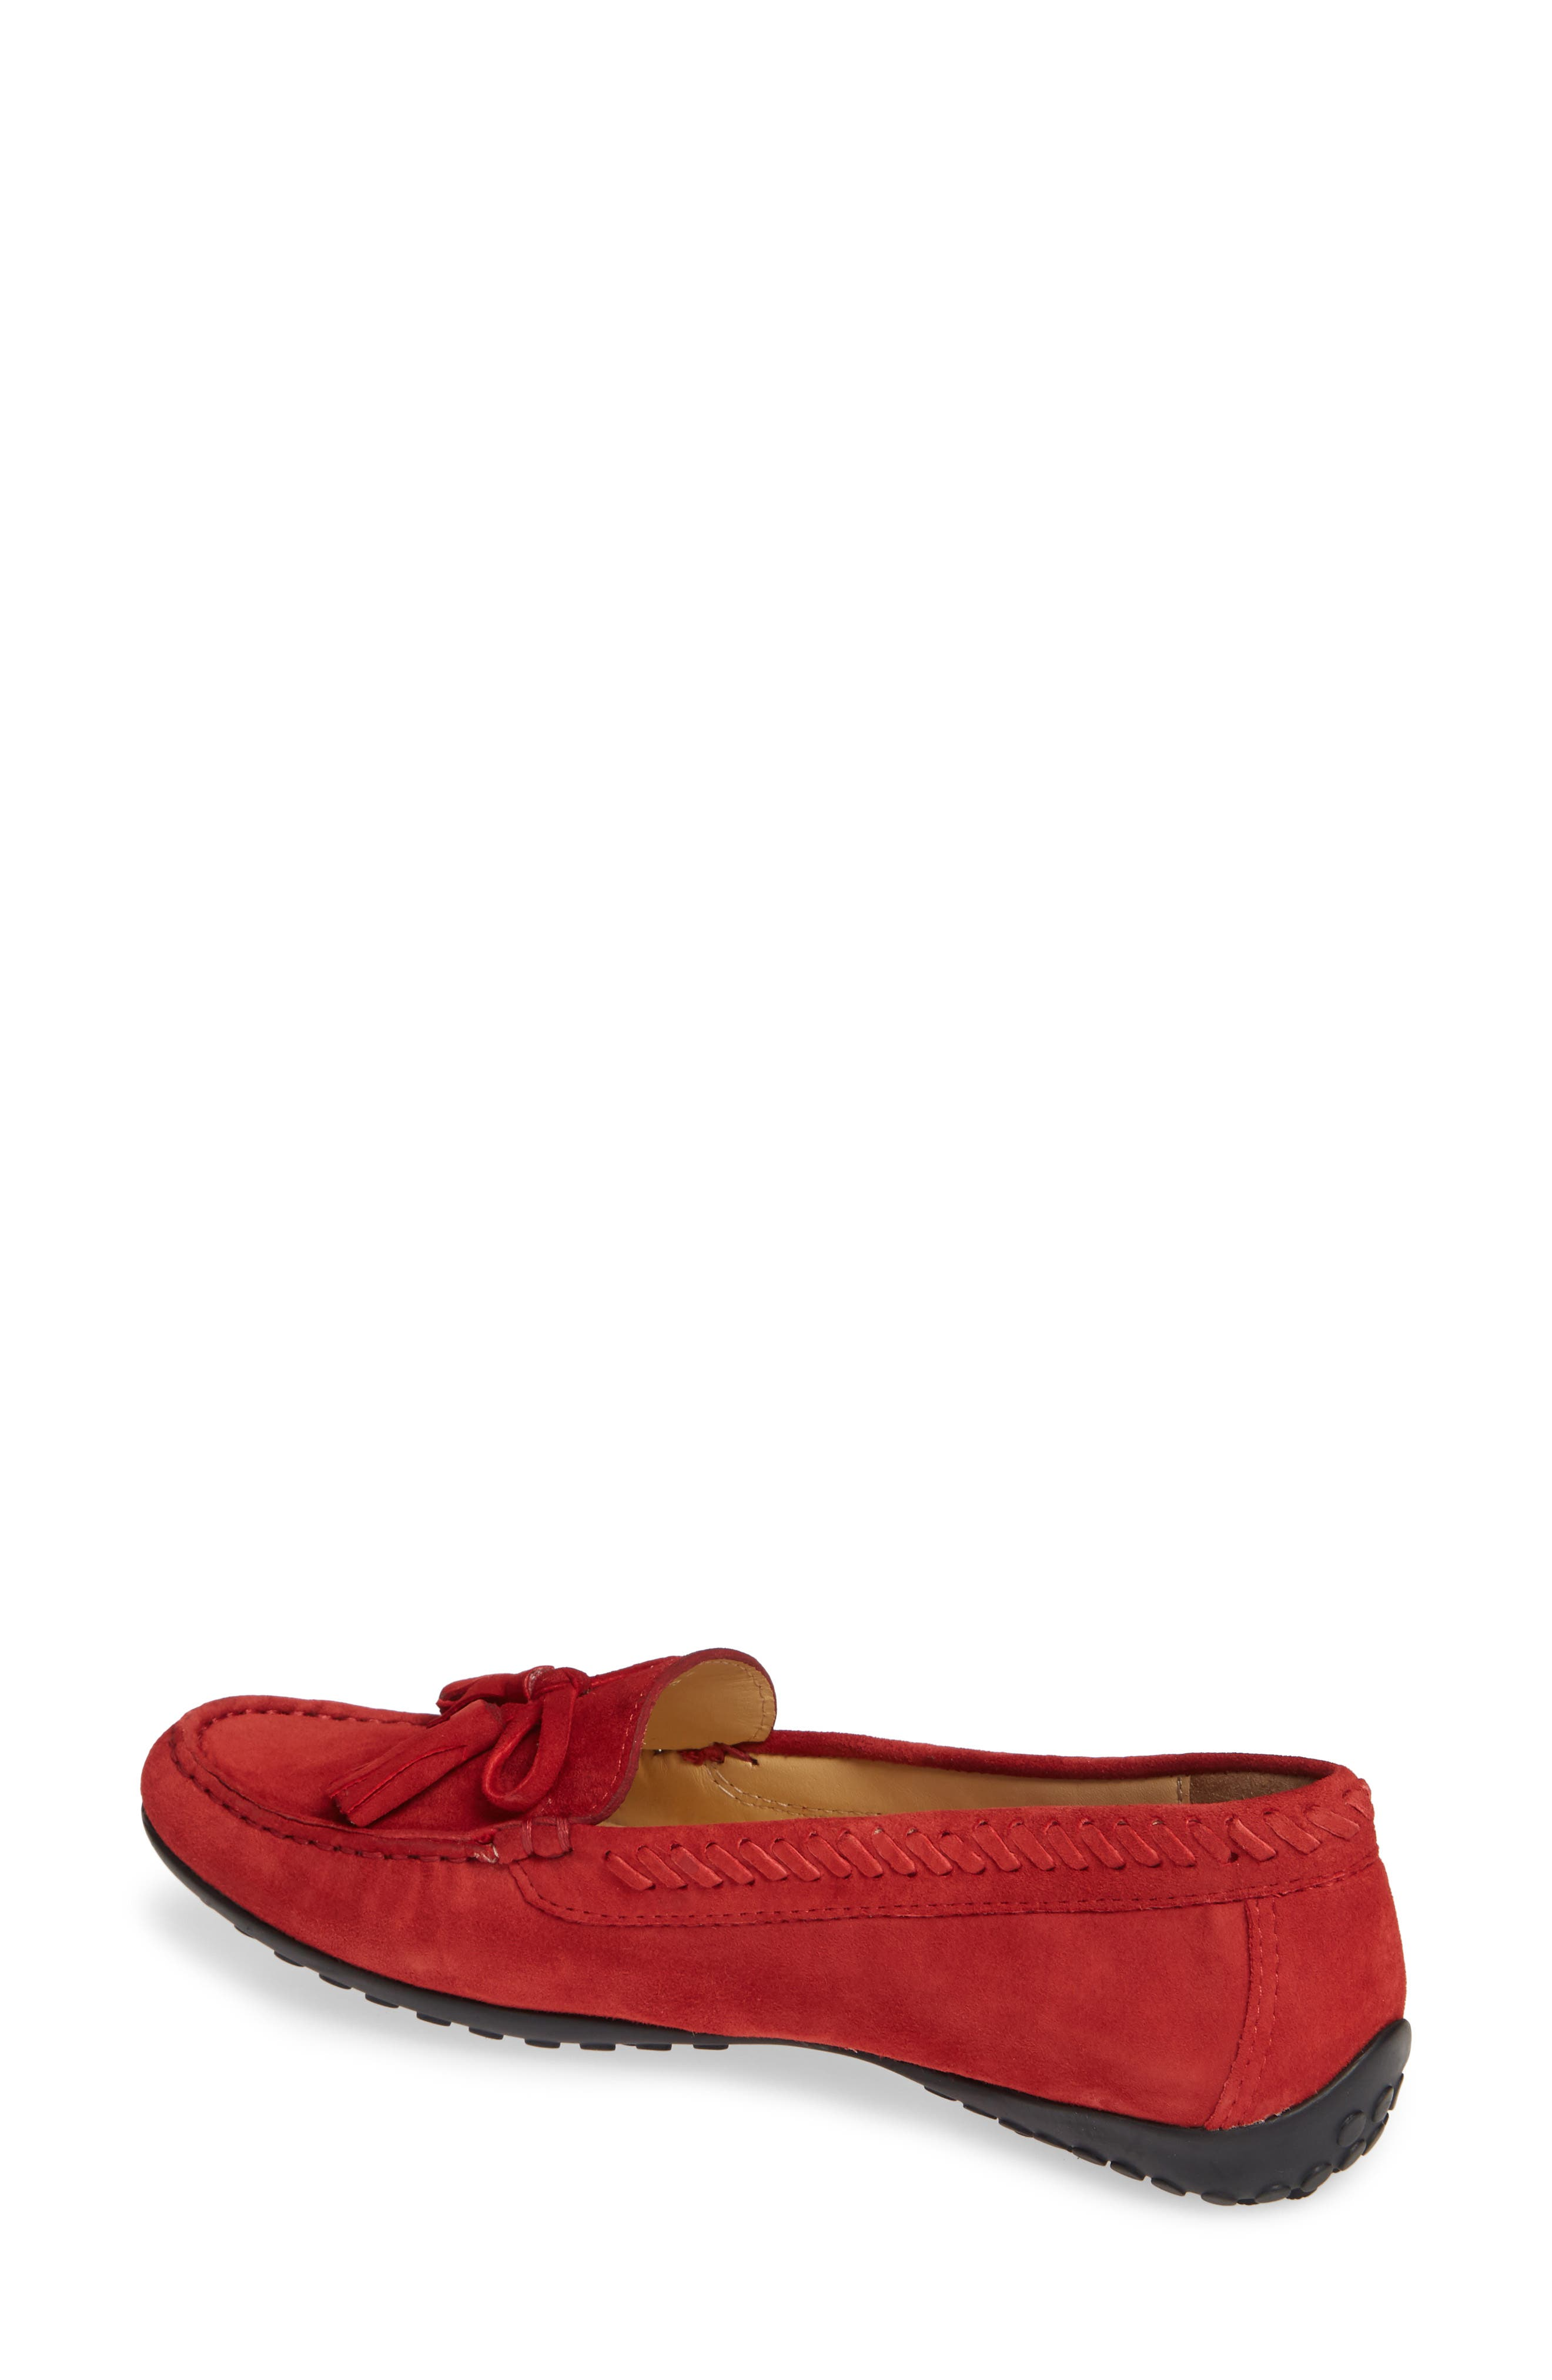 Acajou Driving Moccasin,                             Alternate thumbnail 2, color,                             Red Suede